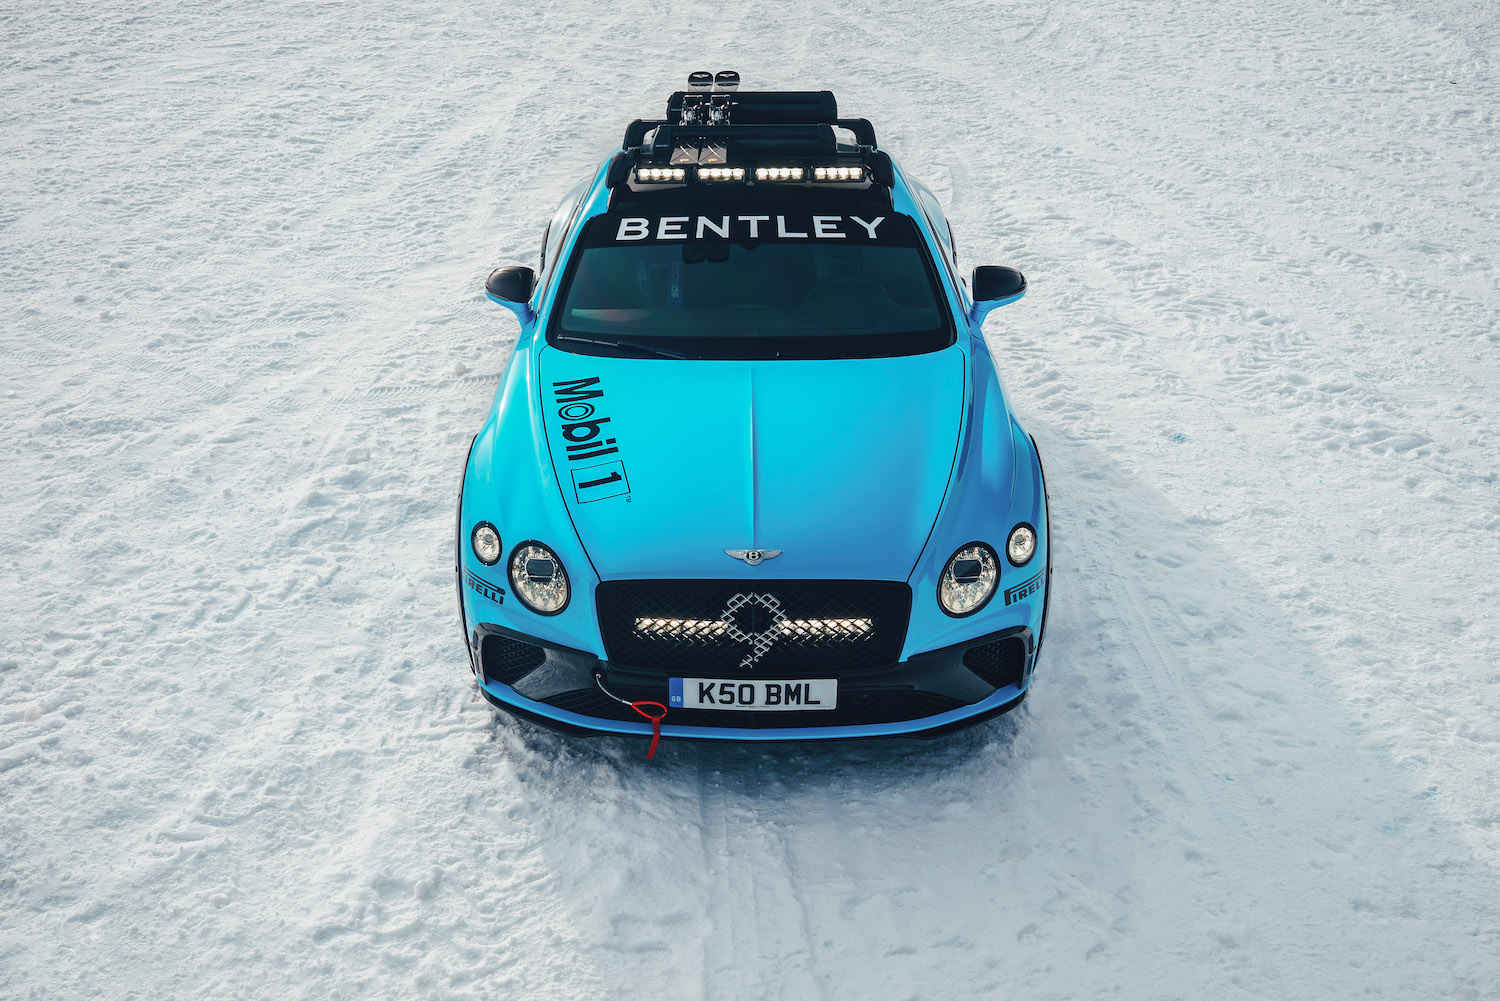 Bentley Continental GT Ice Race Car front elevated